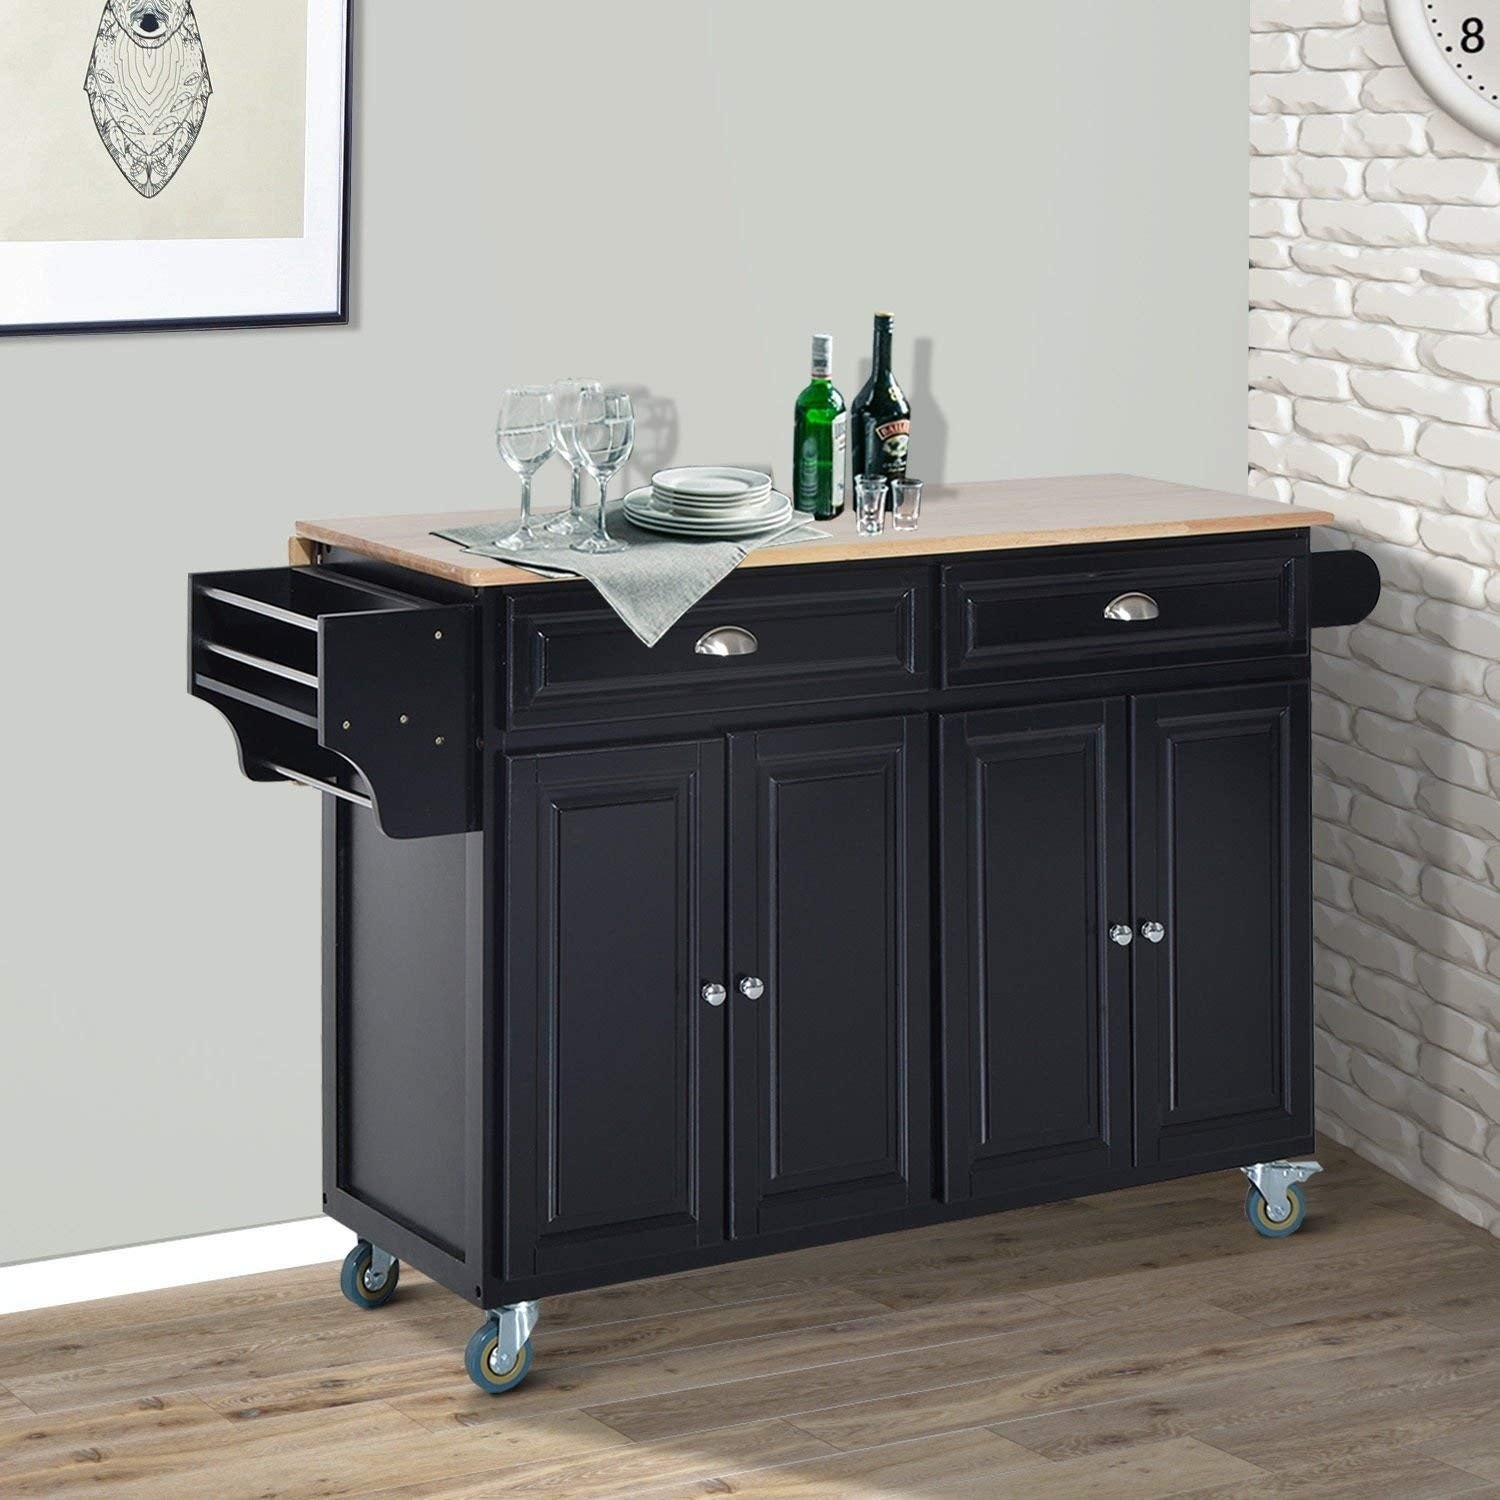 Image of: Shop Black Friday Deals On Homcom Wood Top Drop Leaf Multi Storage Cabinet Rolling Kitchen Island Table Cart With Wheels Black Overstock 23055932